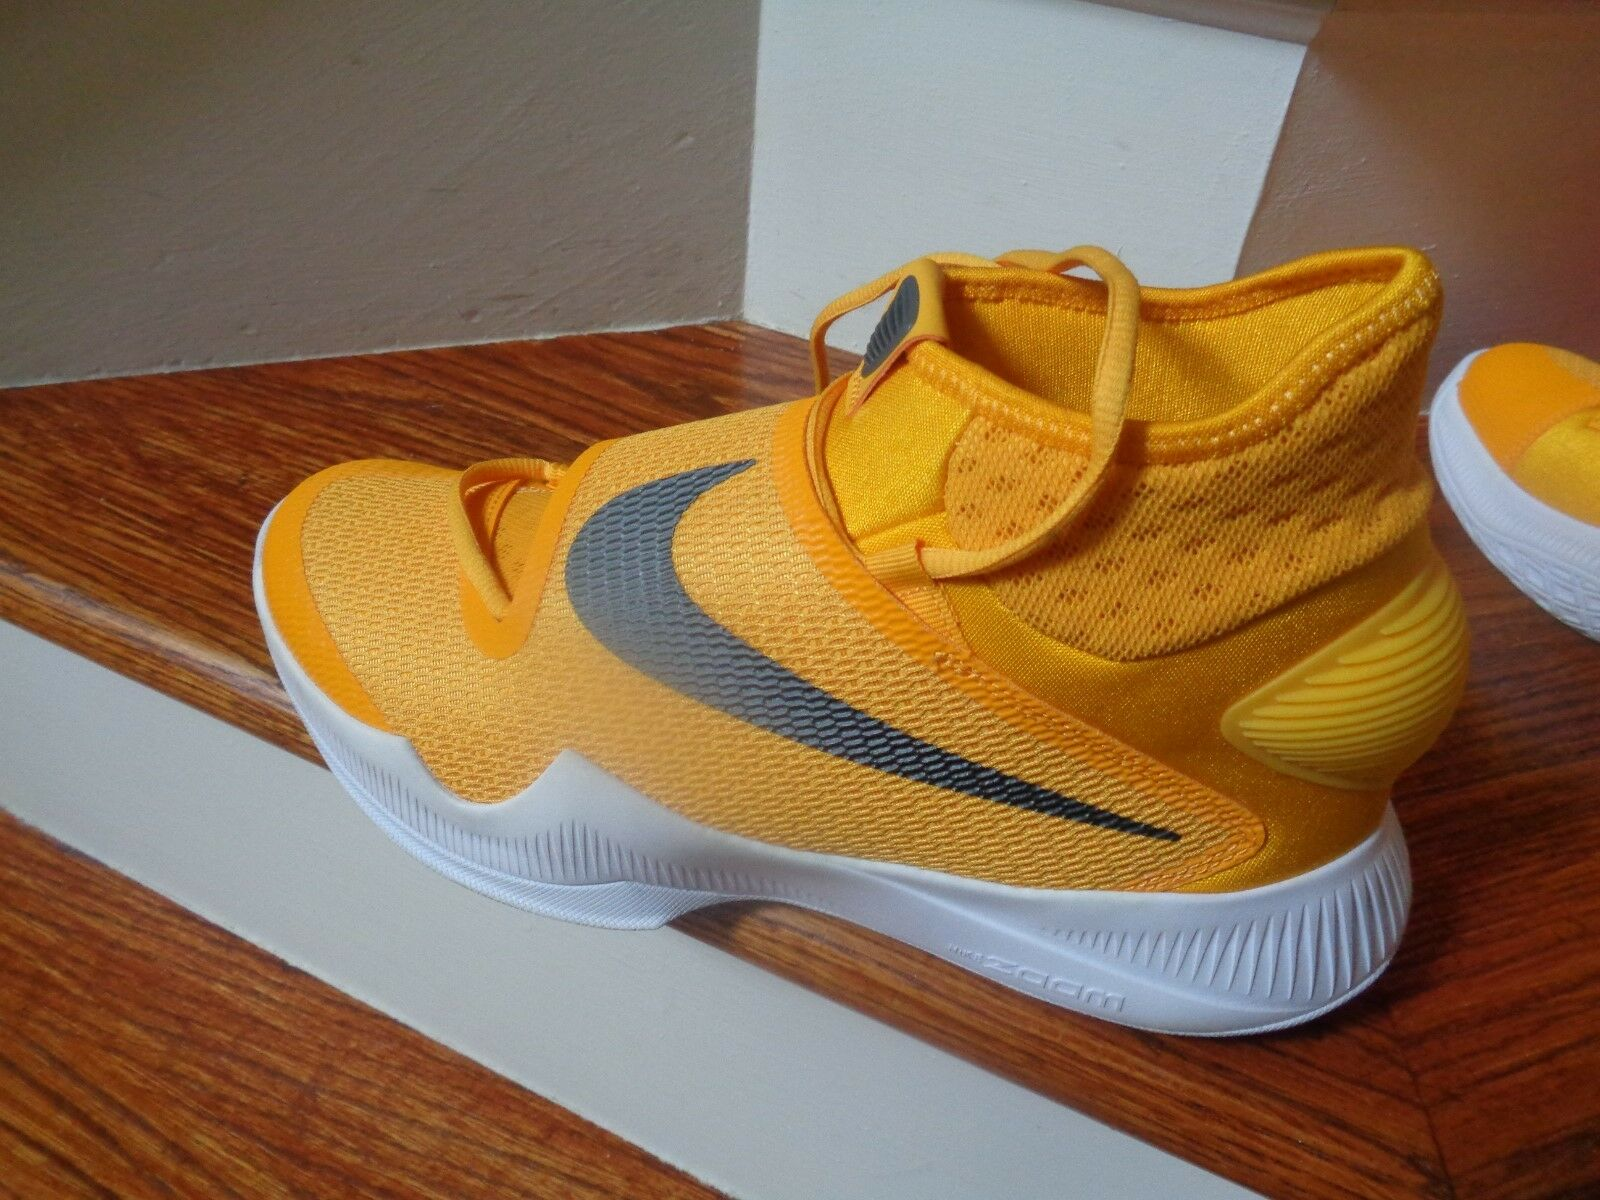 Nike Zoom Hyperrev 2016 TB Men's Basketball Shoes, 835439 702 Size 14 NEW